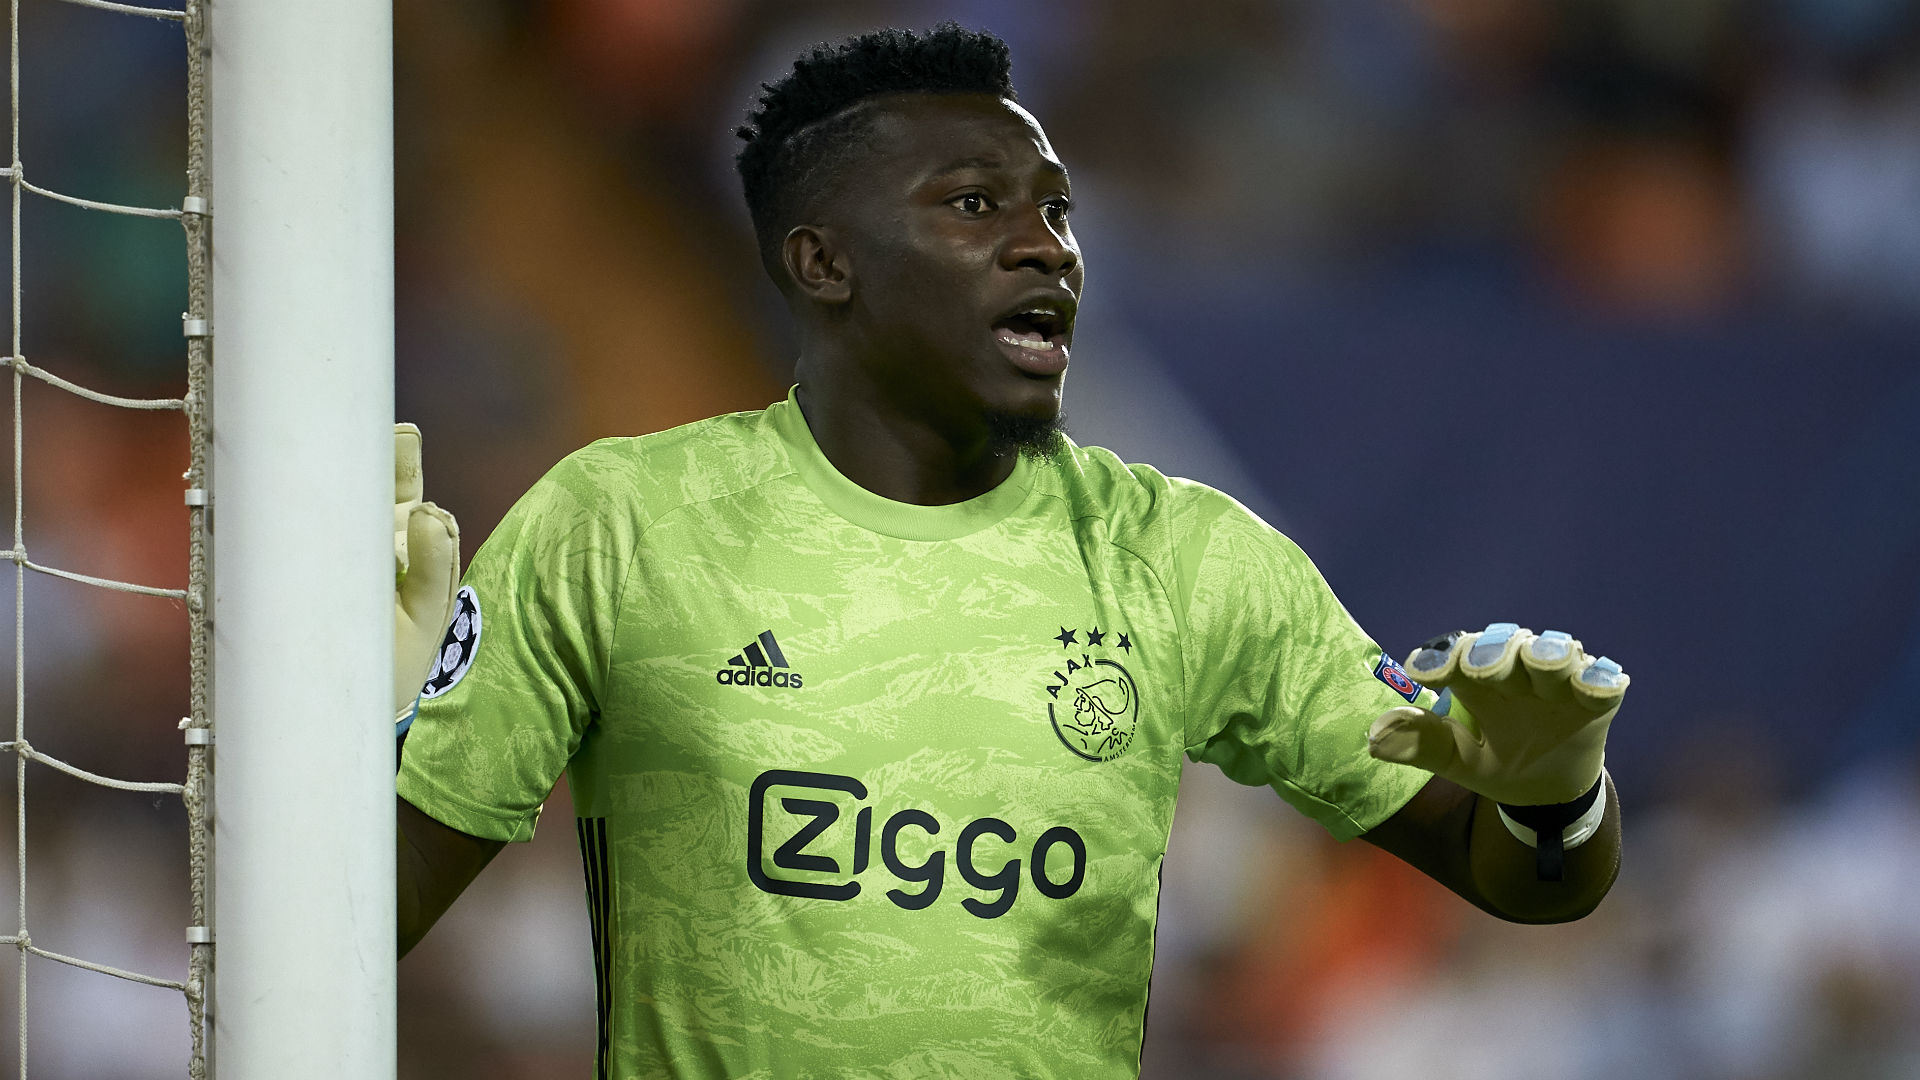 Onana claims a club passed on him because fans would not accept a black goalkeeper